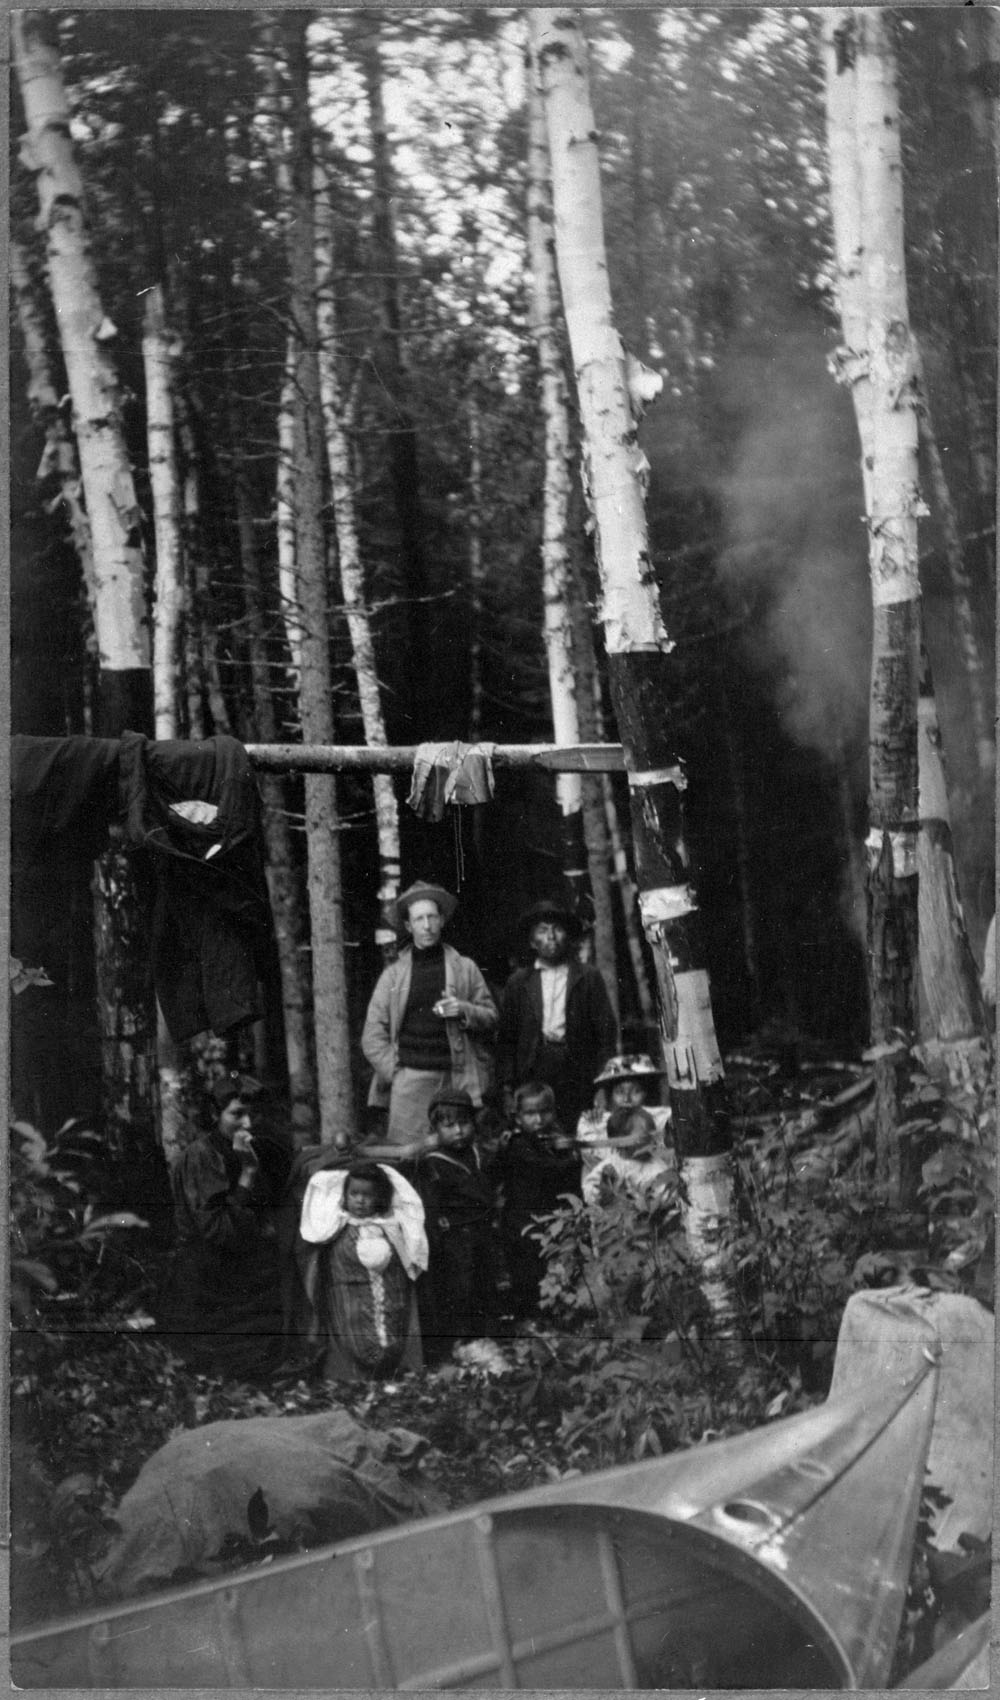 A black-and-white photograph of eight people, including a baby in a cradleboard in a forest. There is a canoe in the foreground.